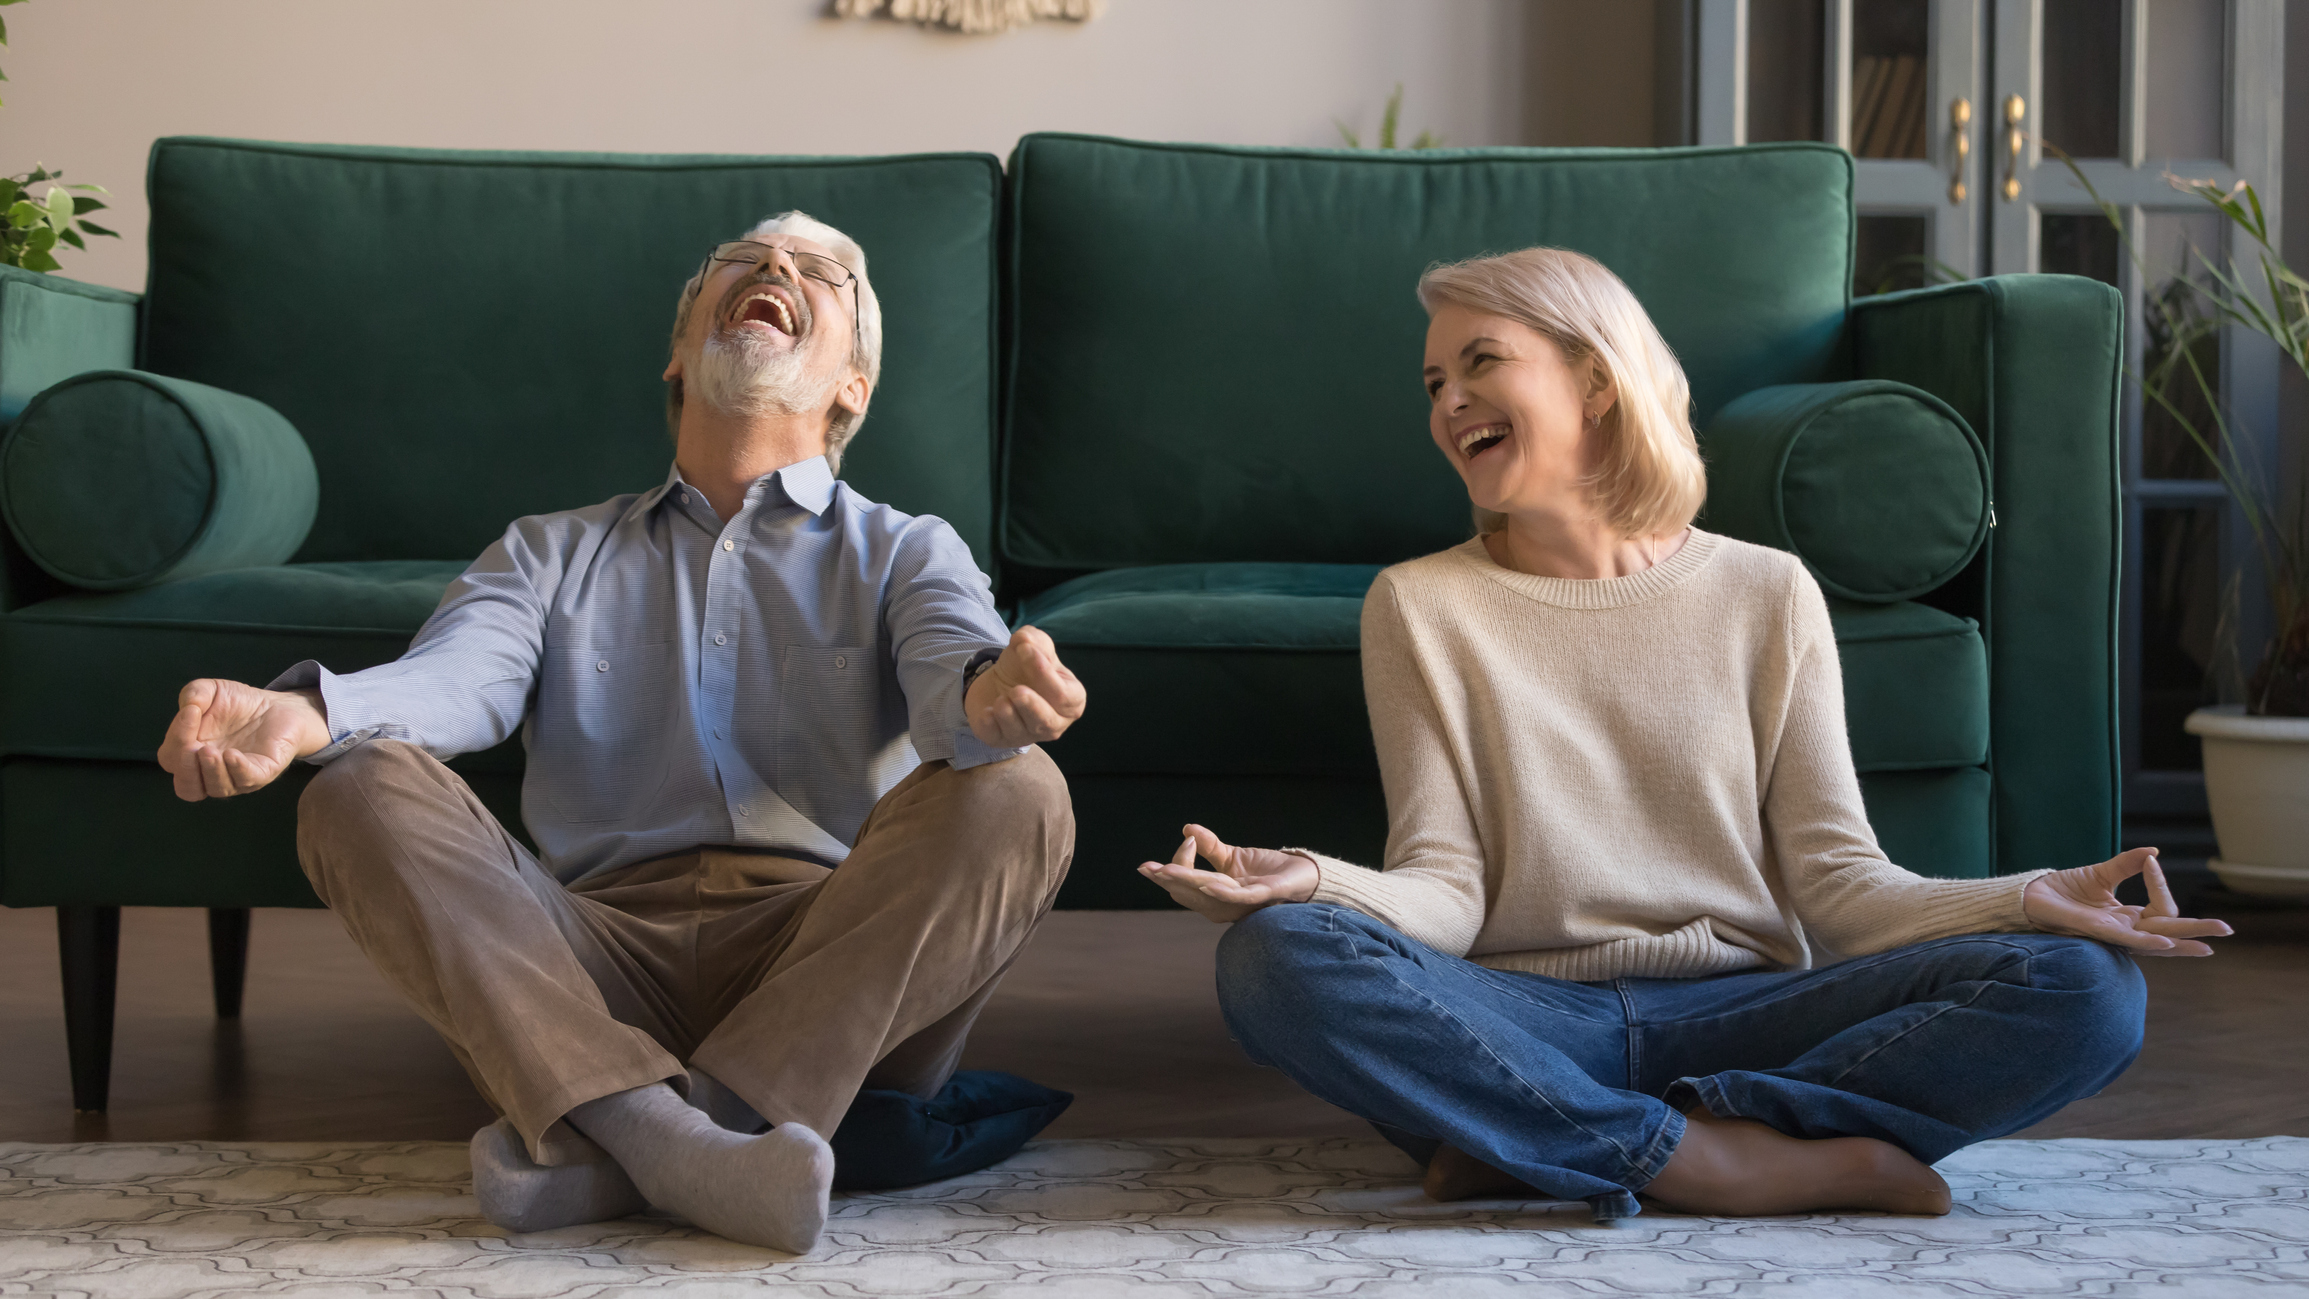 Laughing funny elderly spouses sitting in living room on floor in lotus position practice meditation distracted from yoga exercise joking feels overjoyed, healthy active lifestyle of retirees concept